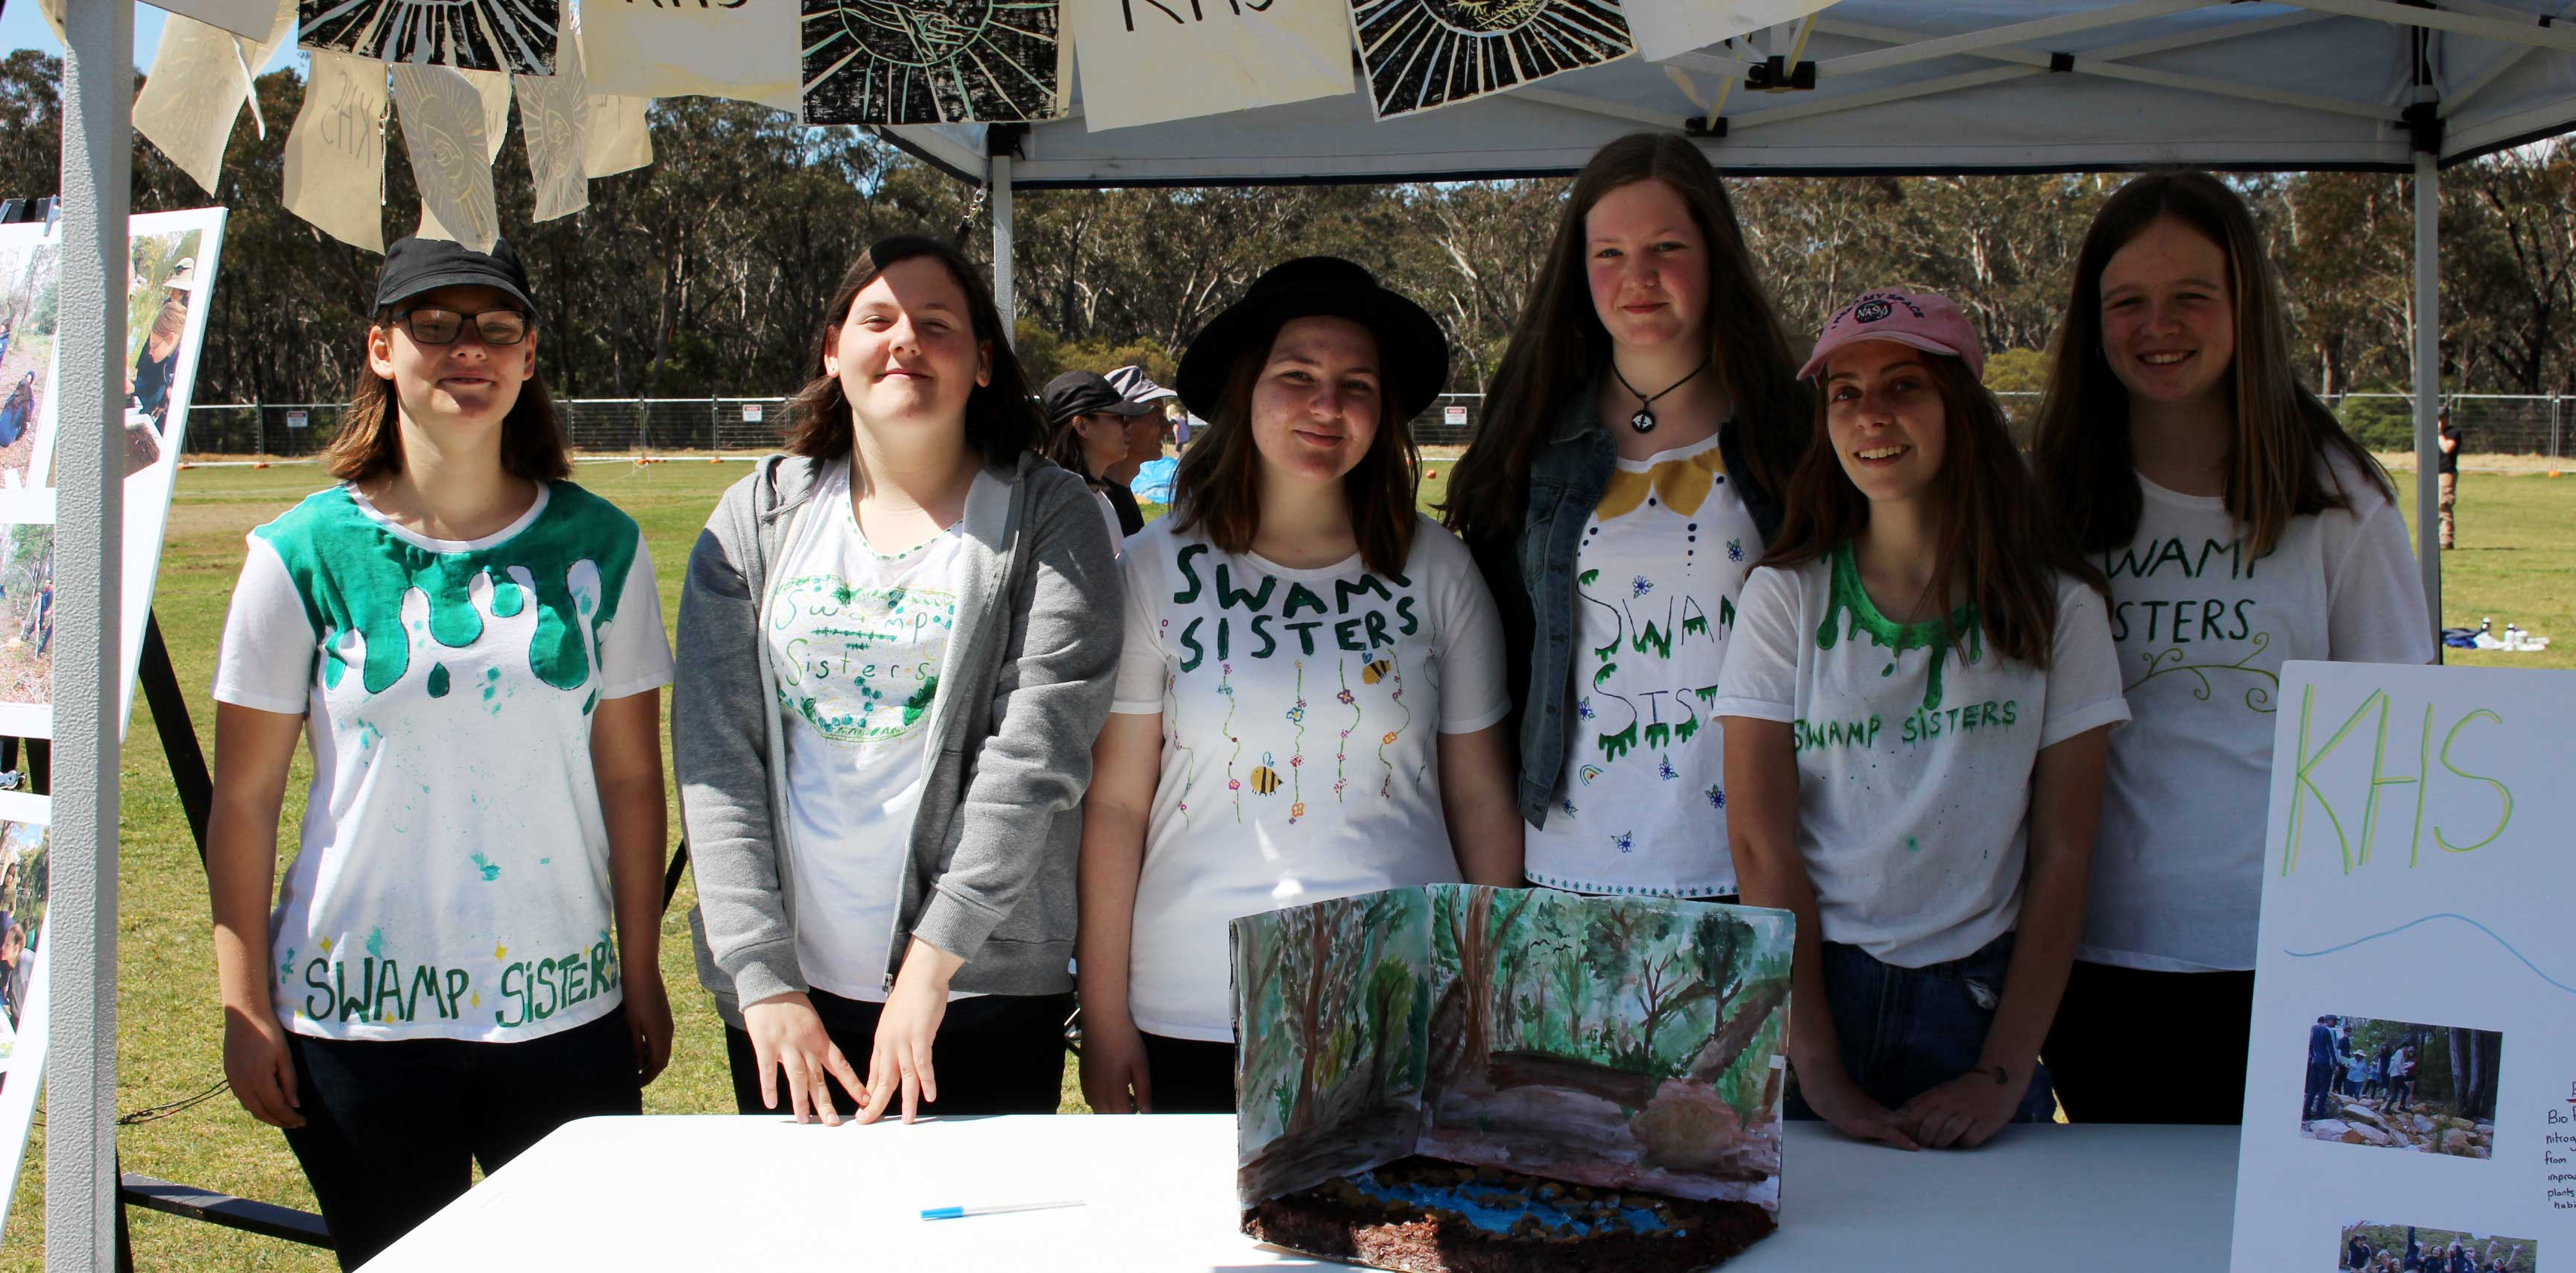 The Swamp Sisters from Katoomba High School - at Swampfest 2018.